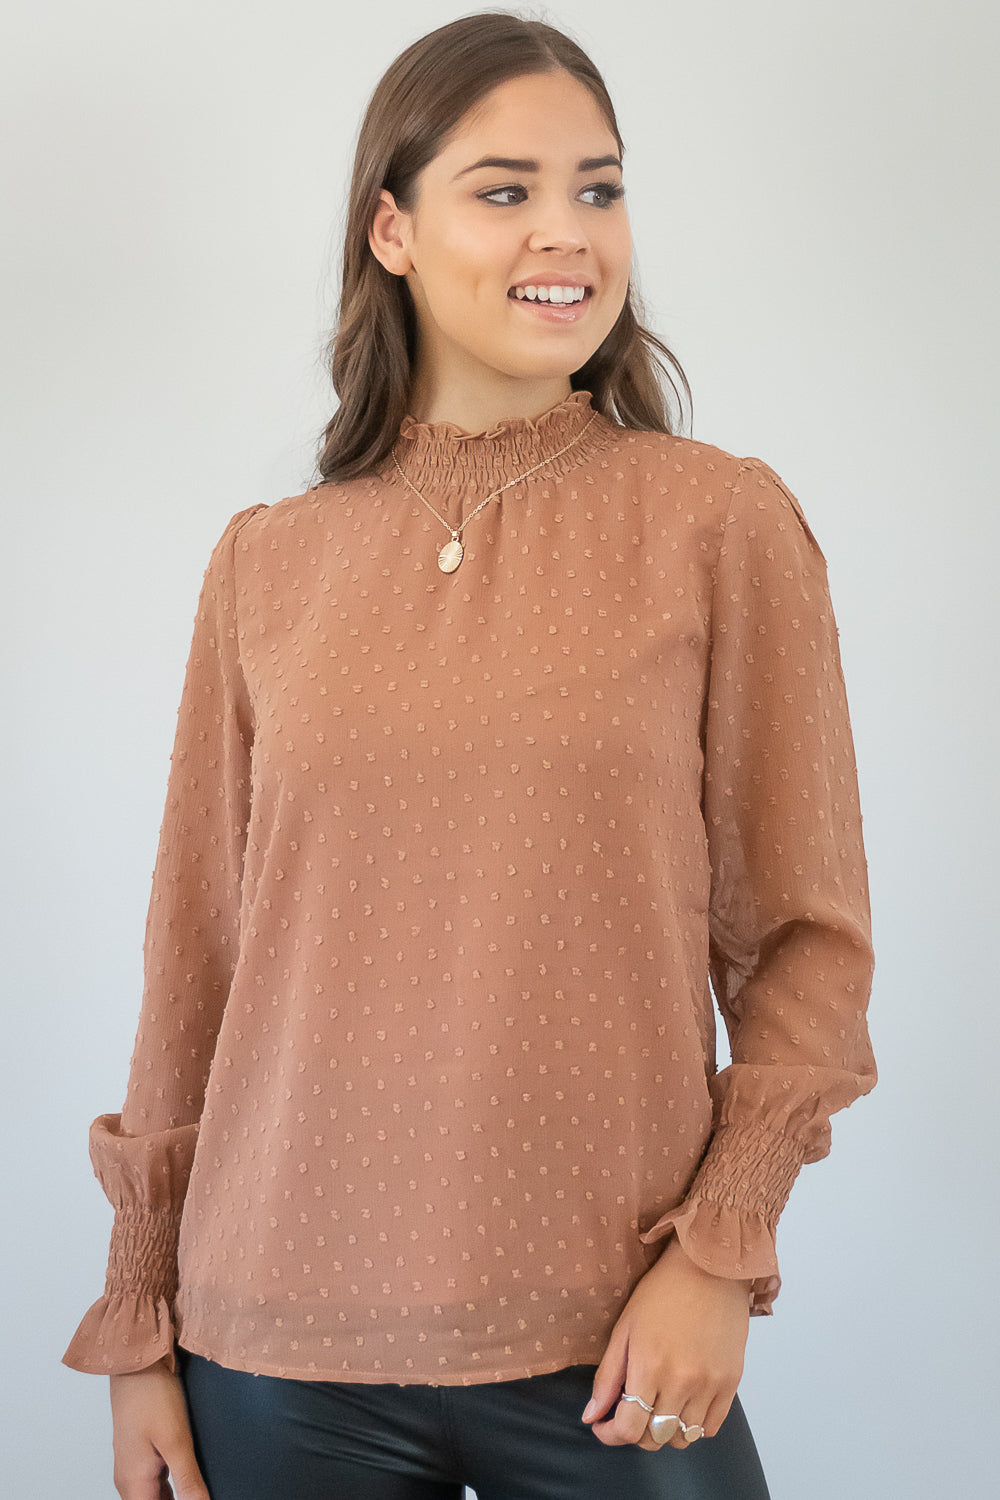 Zena Top in Tan